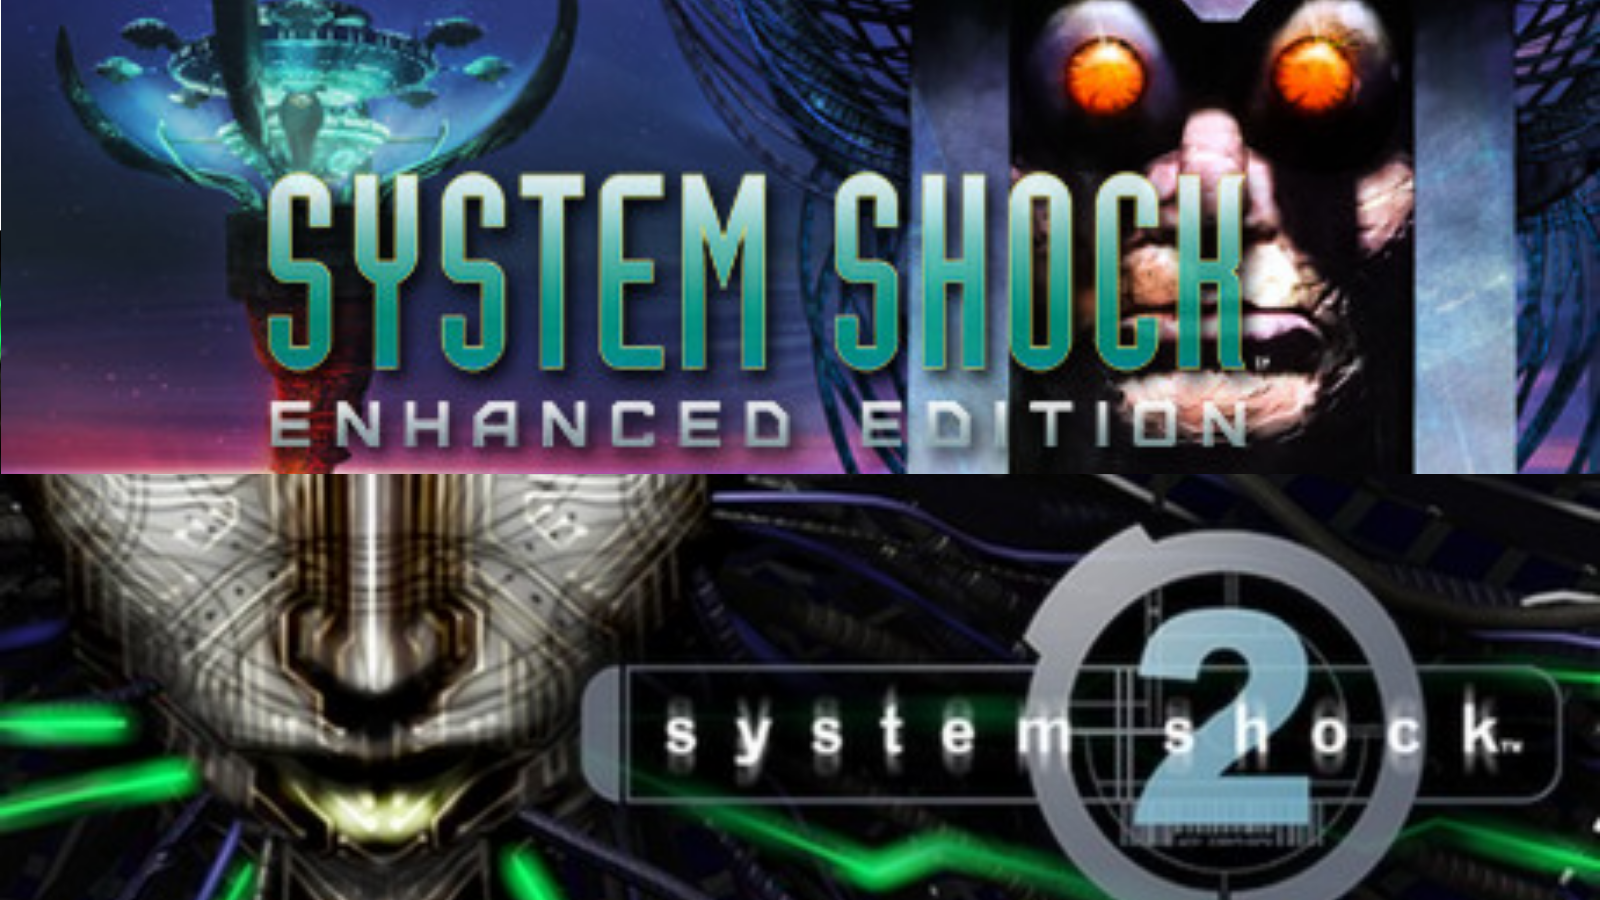 System Shock 1 and 2 logo